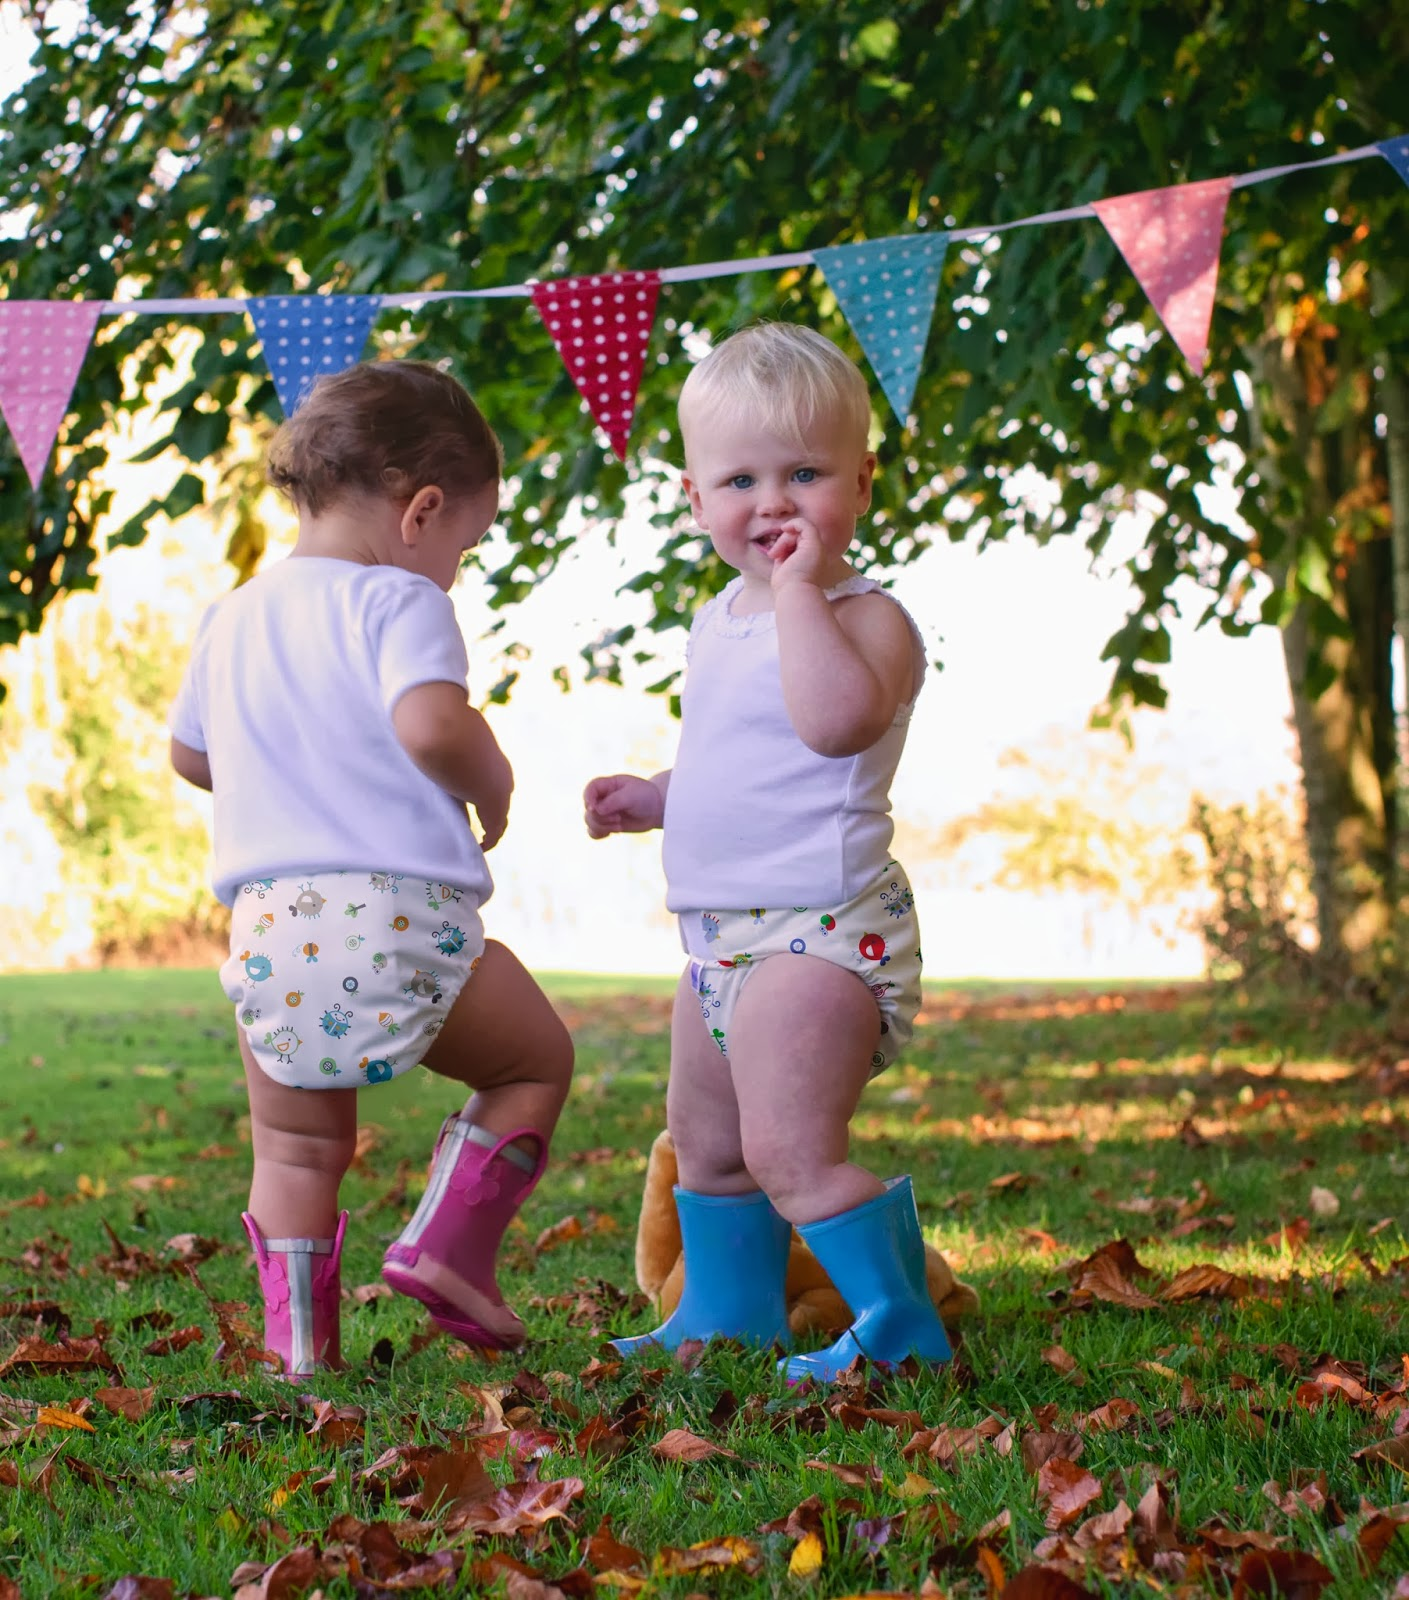 bunting and bambino mio cloth nappies